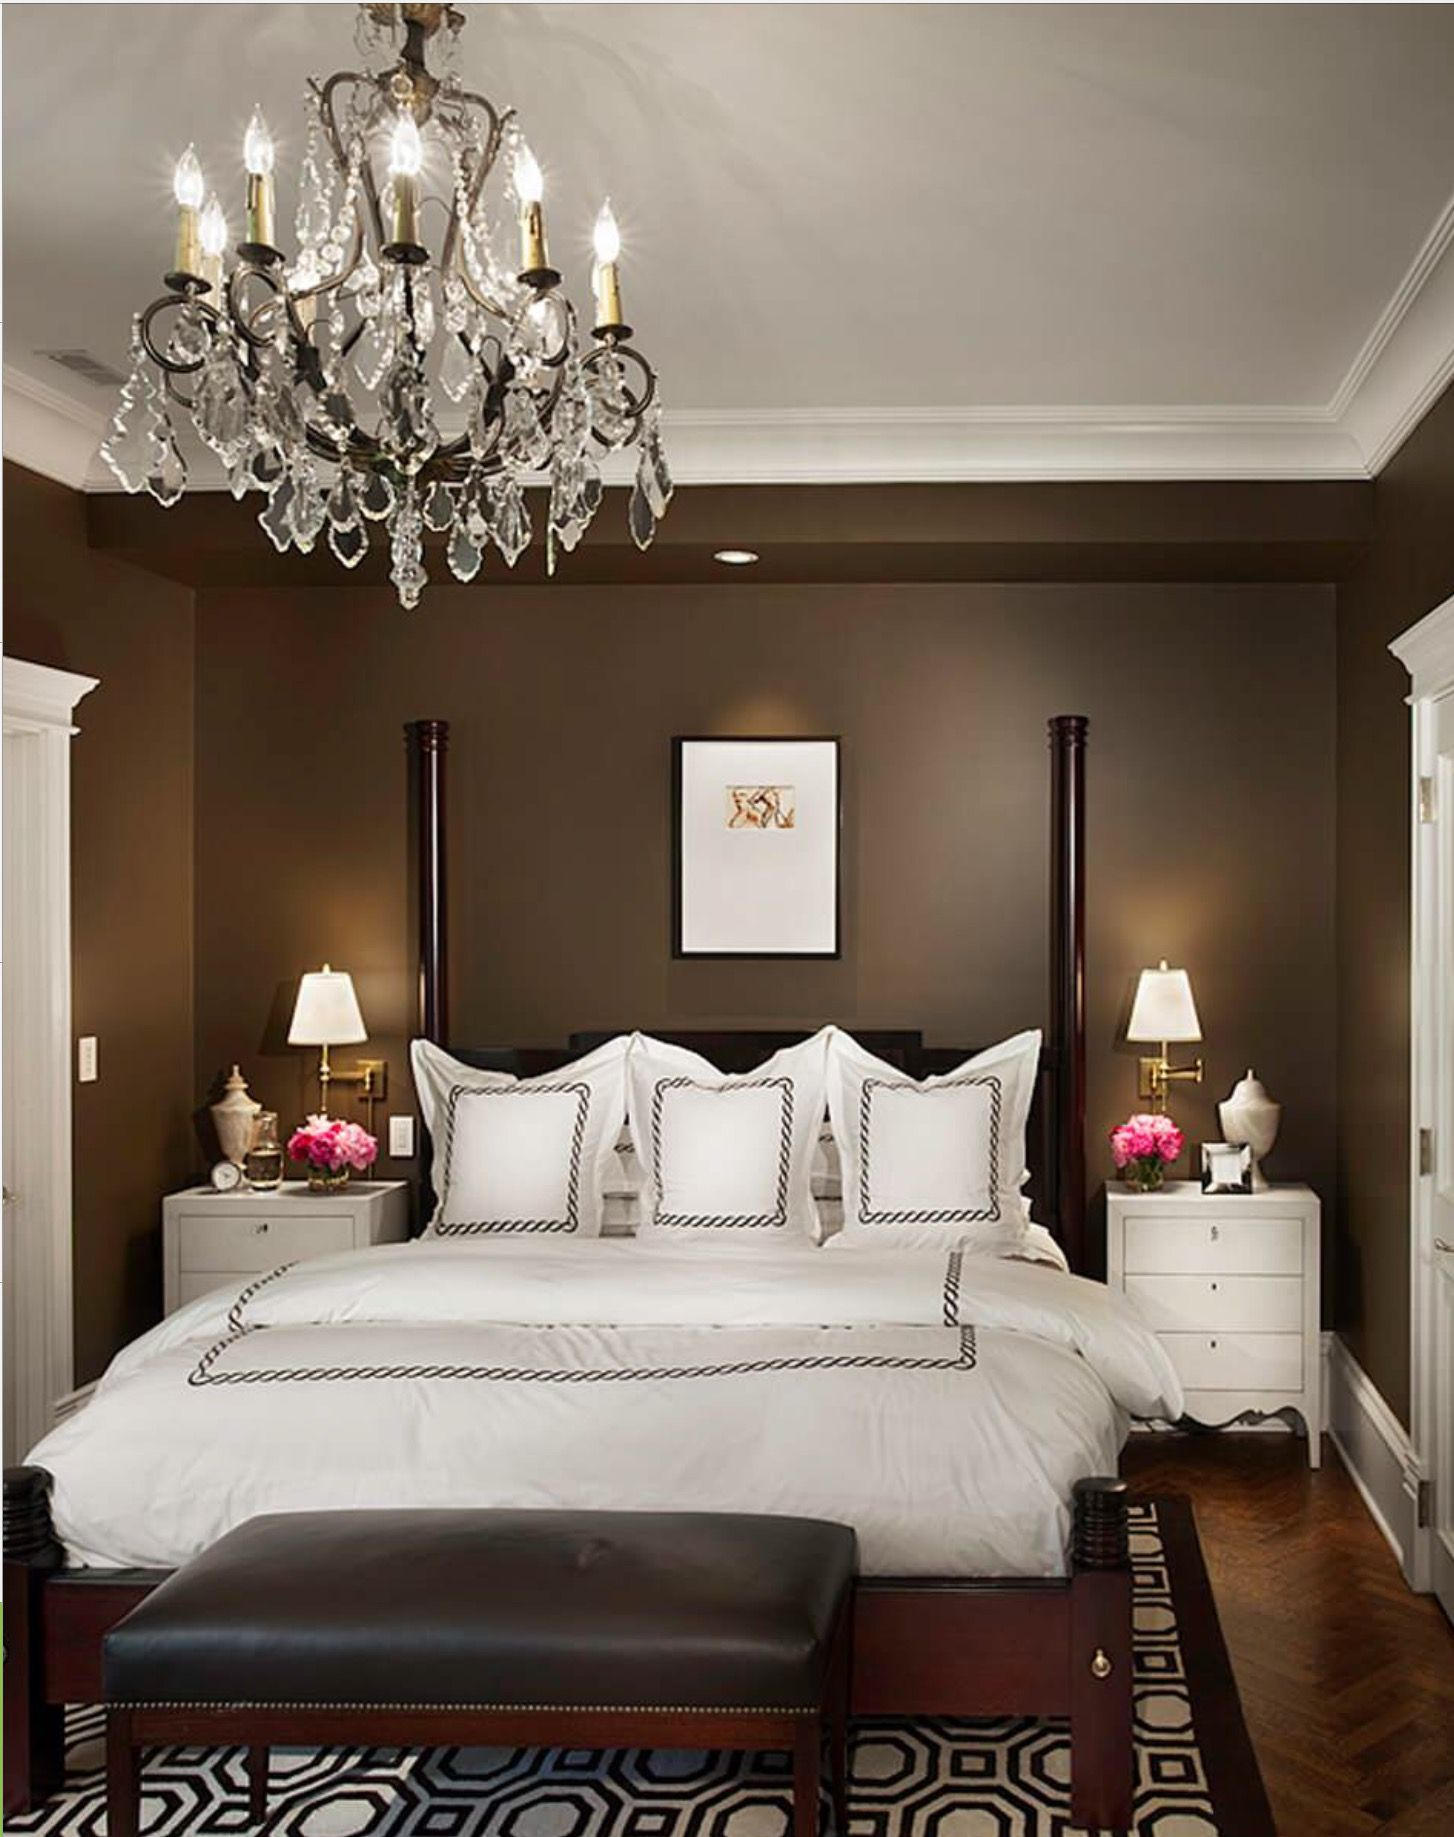 Gorgeous Ideas For Small Bedrooms The Correct Choice Of Colors,